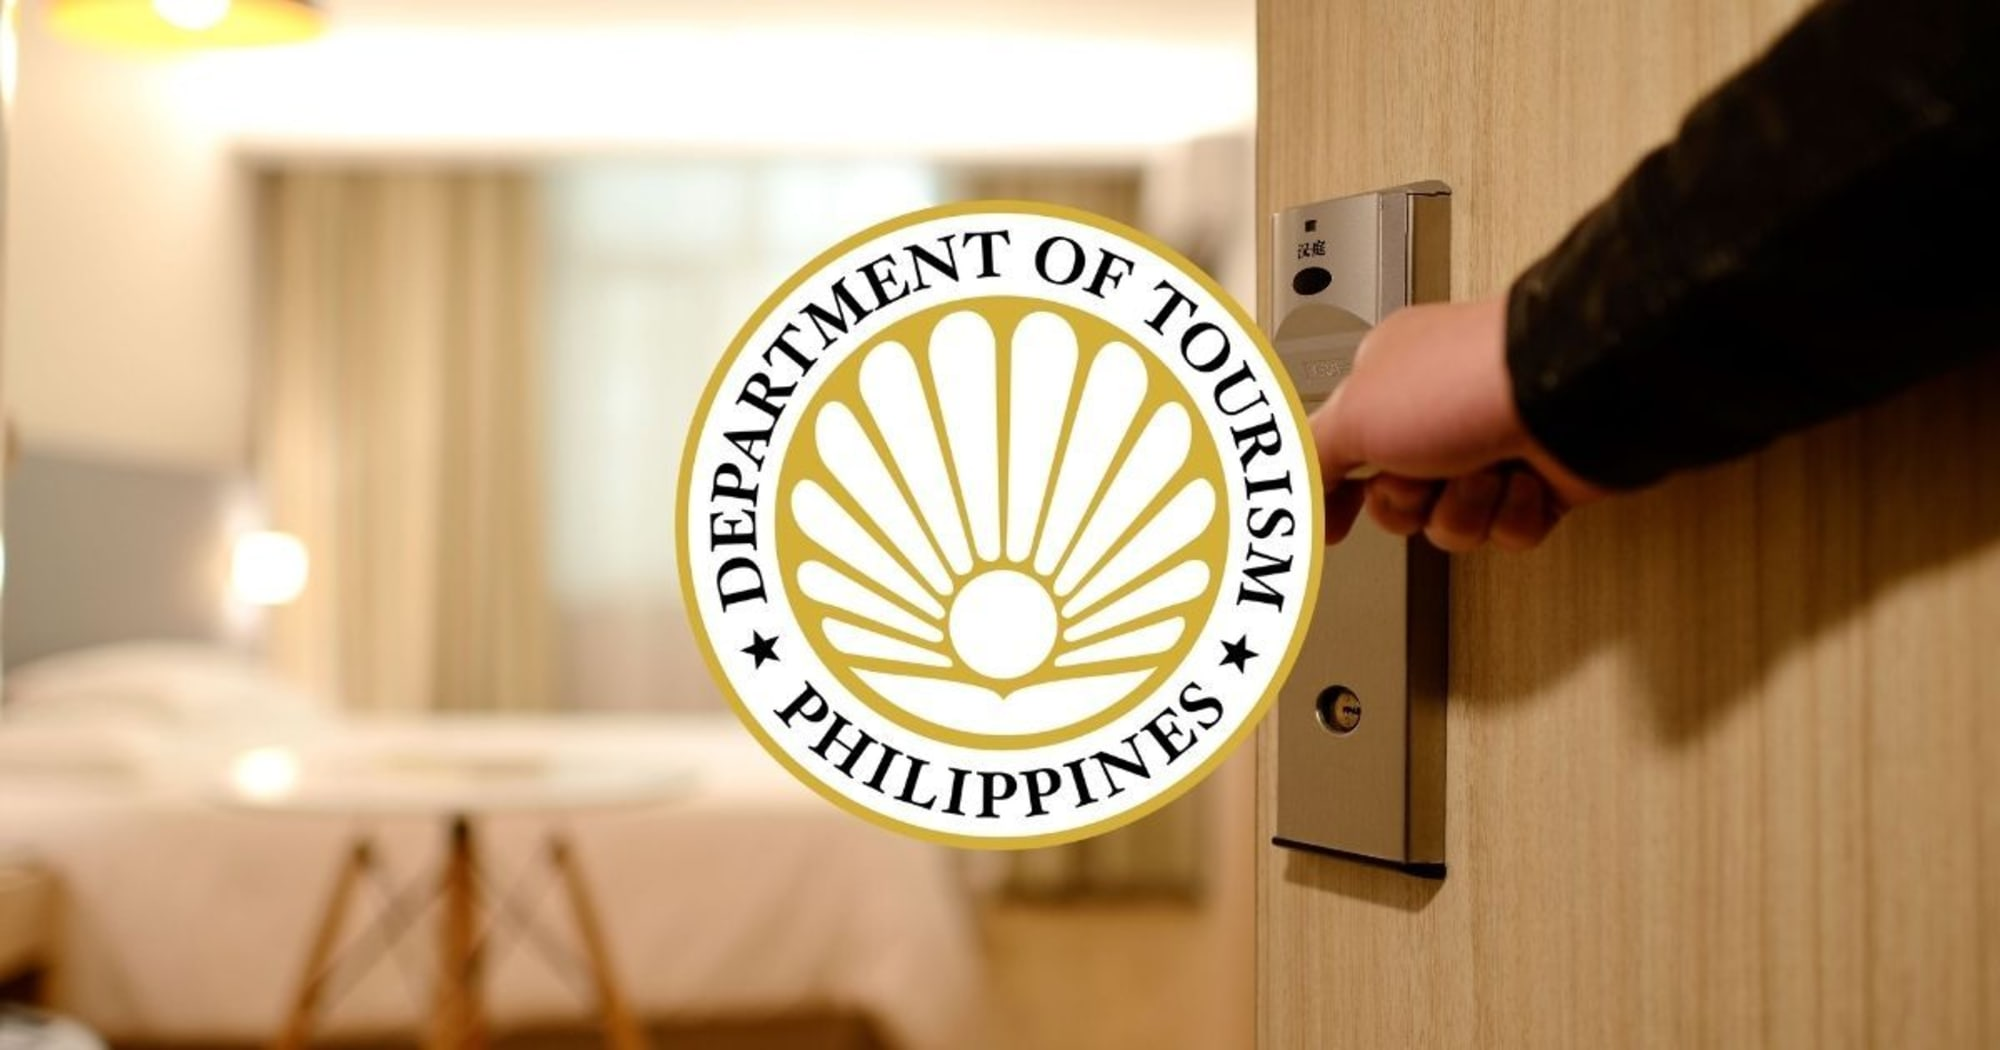 DOT is confident that all accredited establishments complies with the new guidelines under Alert Level 4